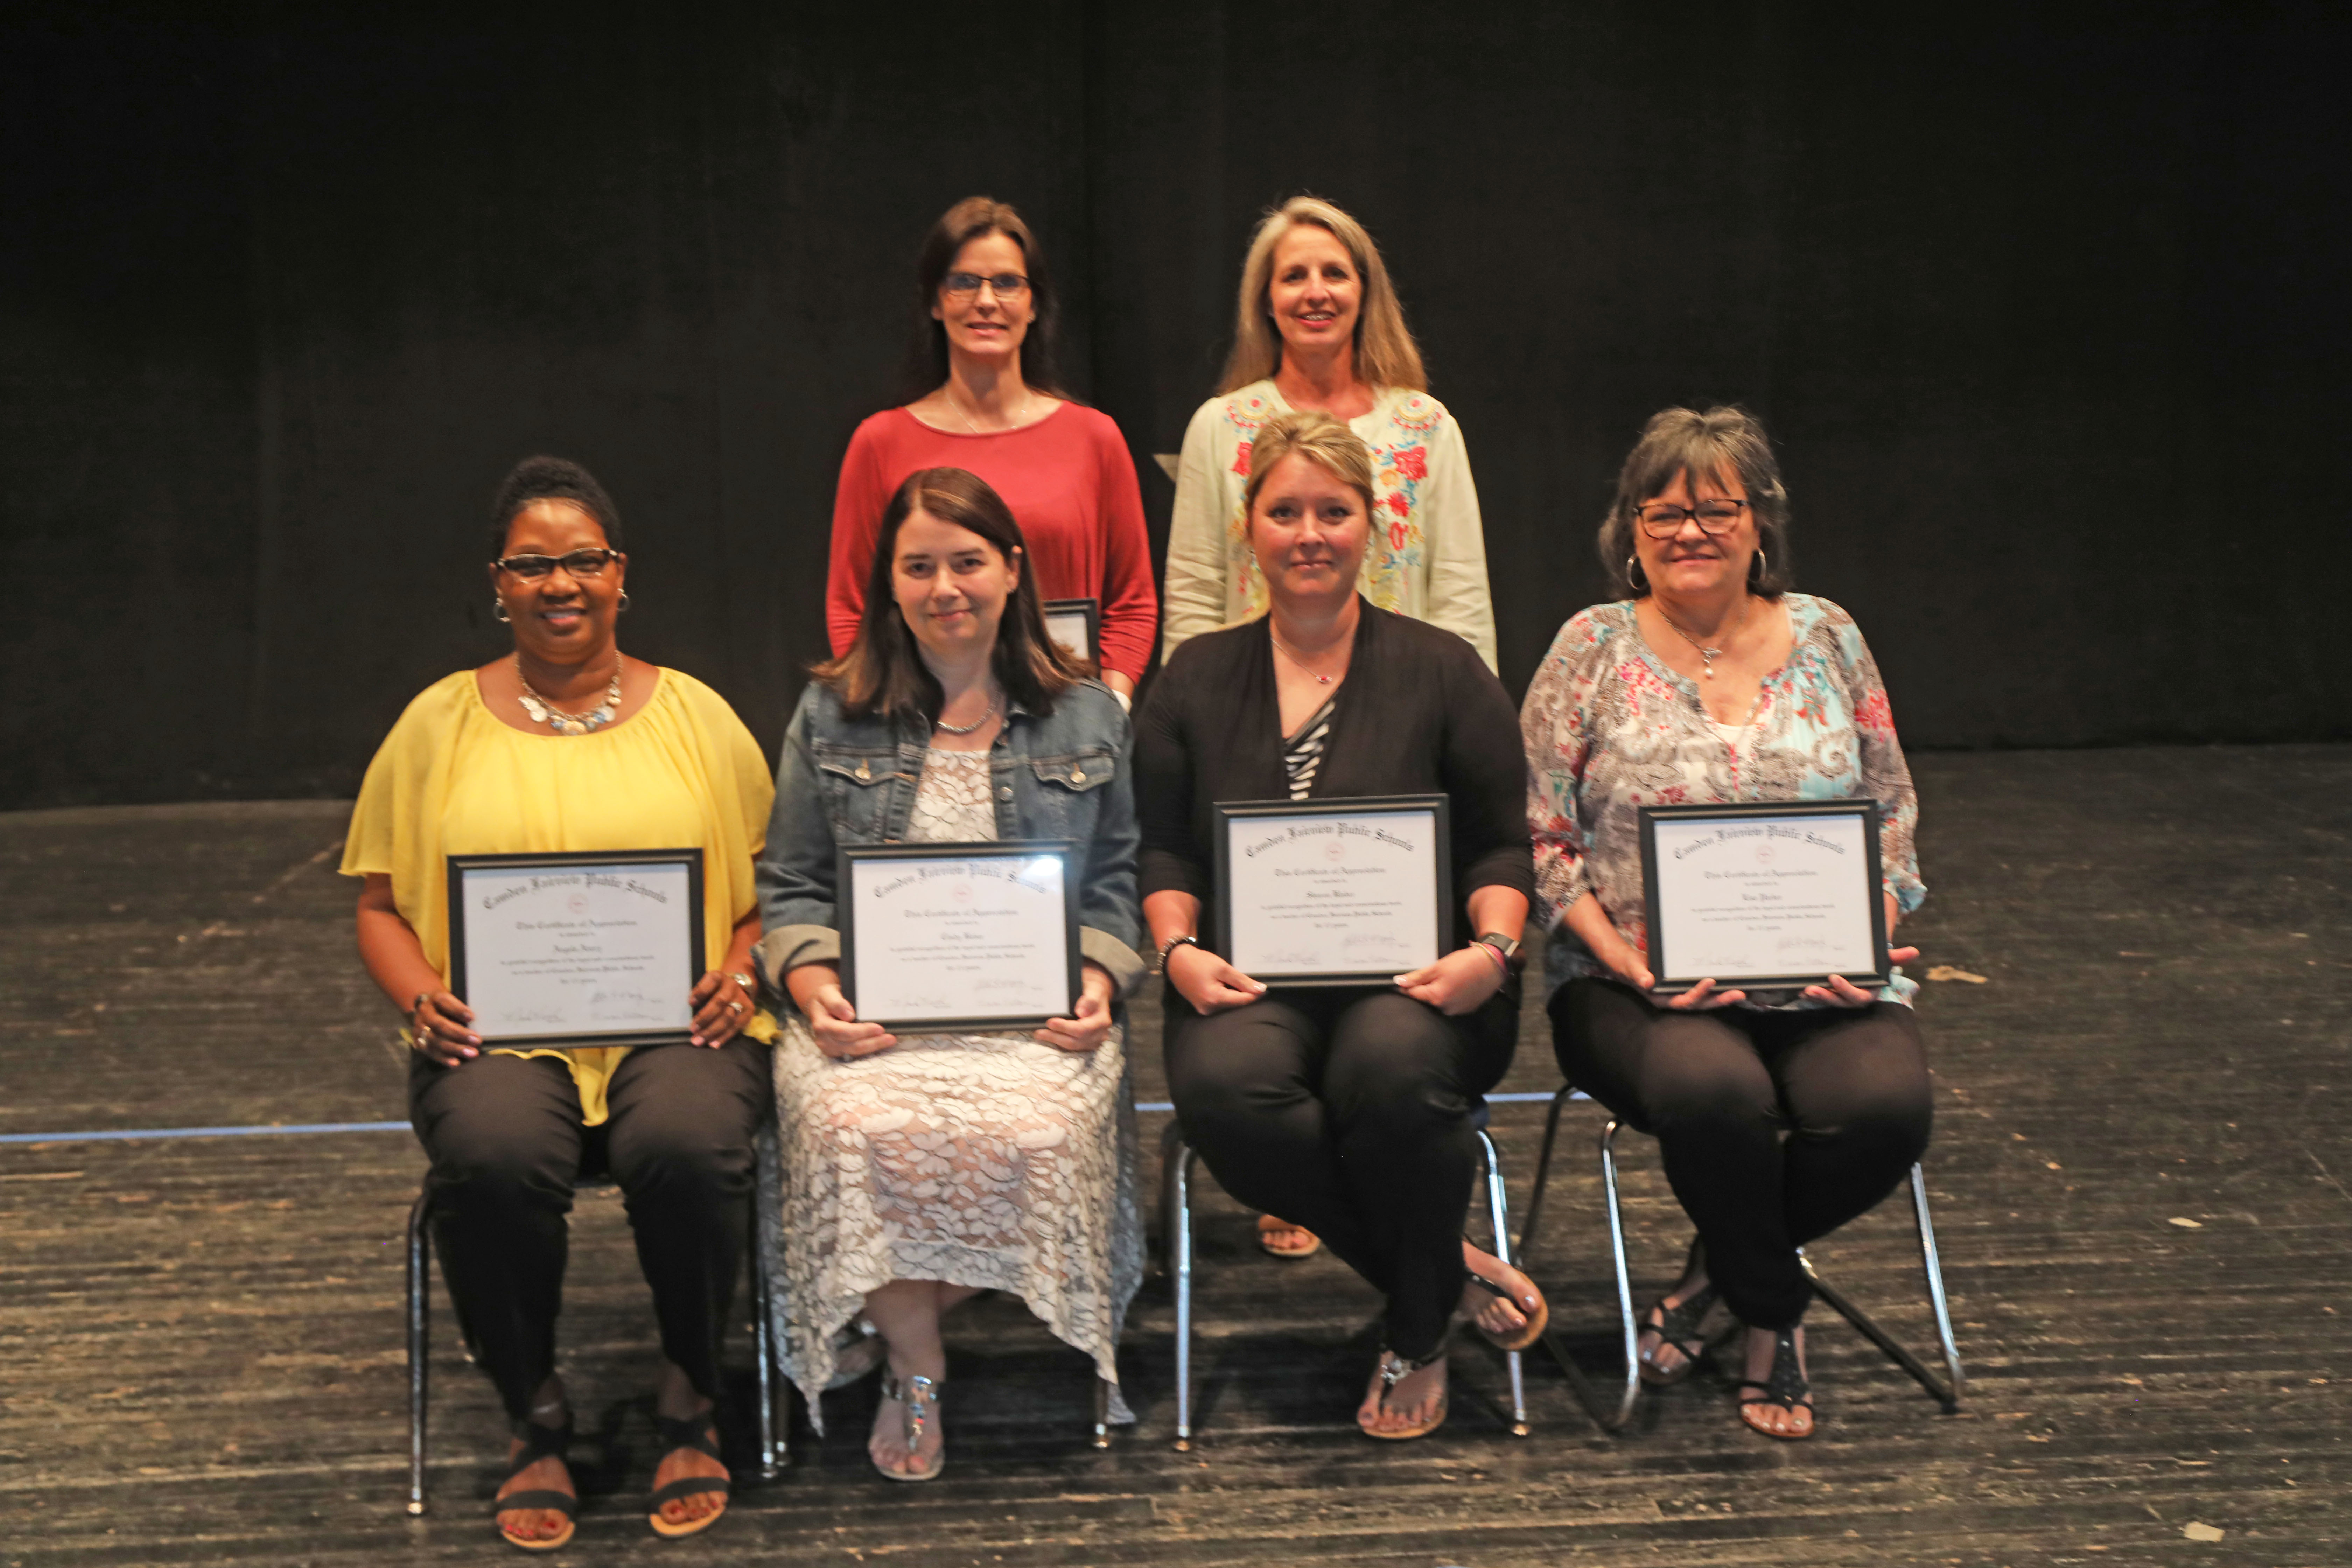 15 Year Certified: Front Row L to R: Angela Avery, Cindy Bever, Crissy Klober, Lisa Parker Back Row L to R: Alicia Steelman, Rebecca Roark